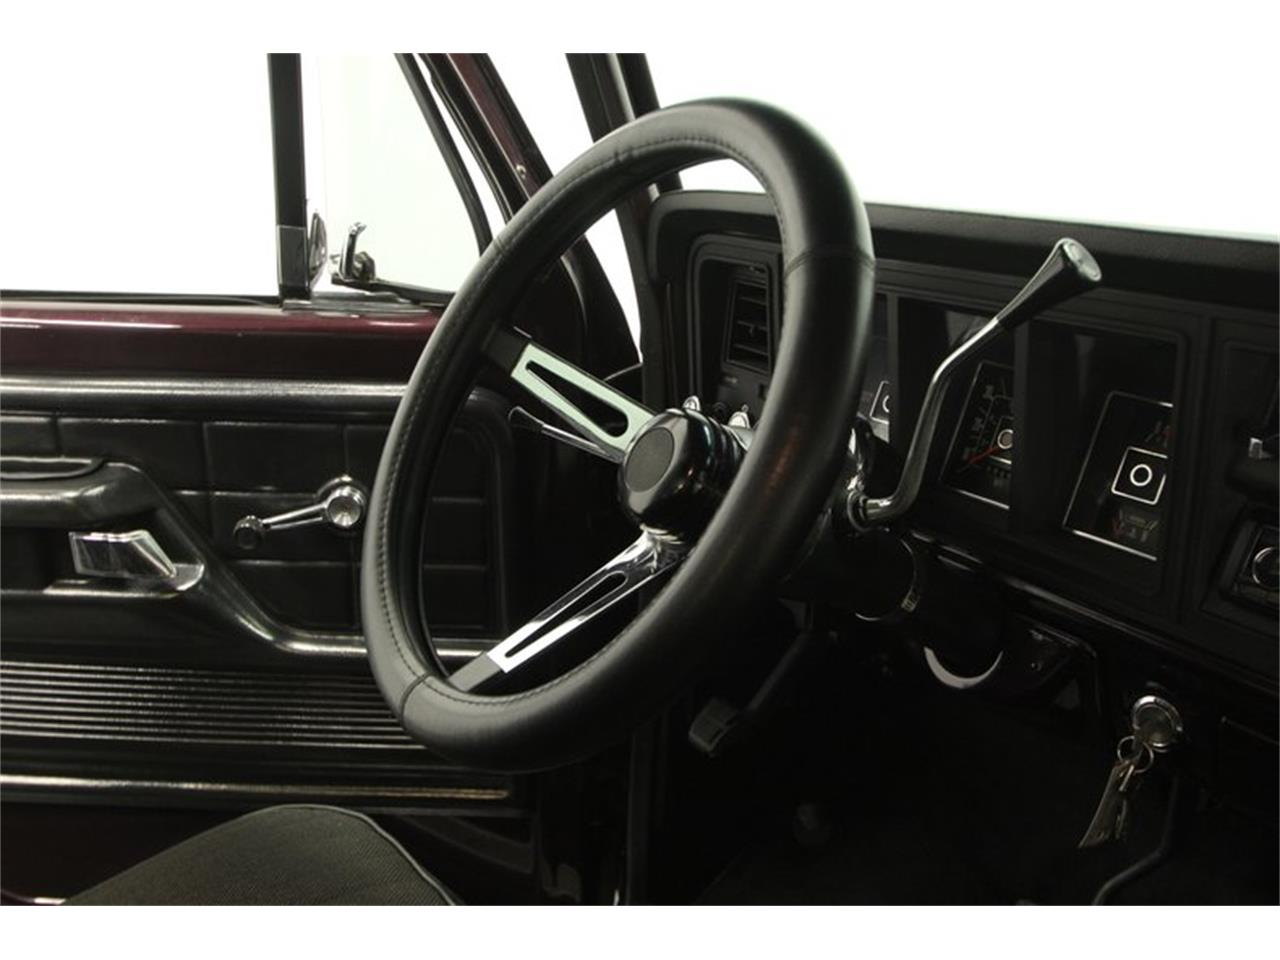 1977 Ford F100 for sale in Lutz, FL – photo 53